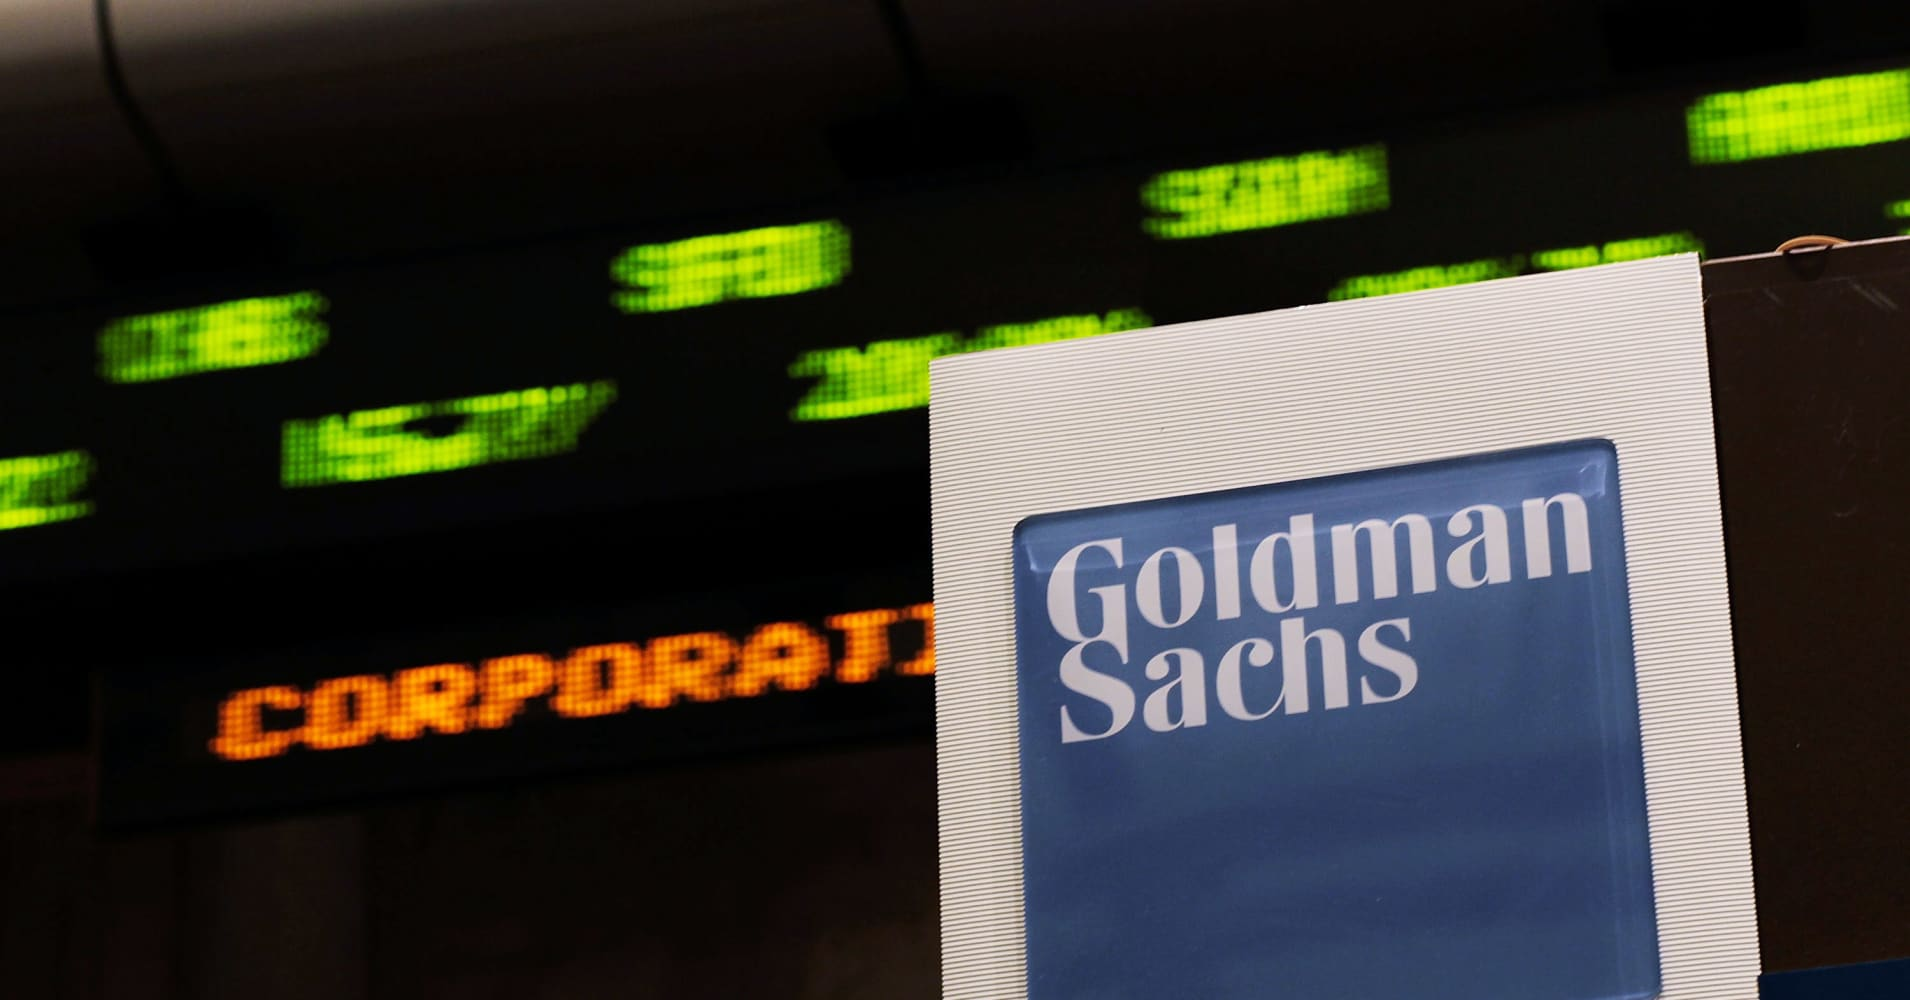 http://fm.cnbc.com/applications/cnbc.com/resources/img/editorial/2011/10/28/45078590-goldman_sachs_ticker_getty.1910x1000.jpg